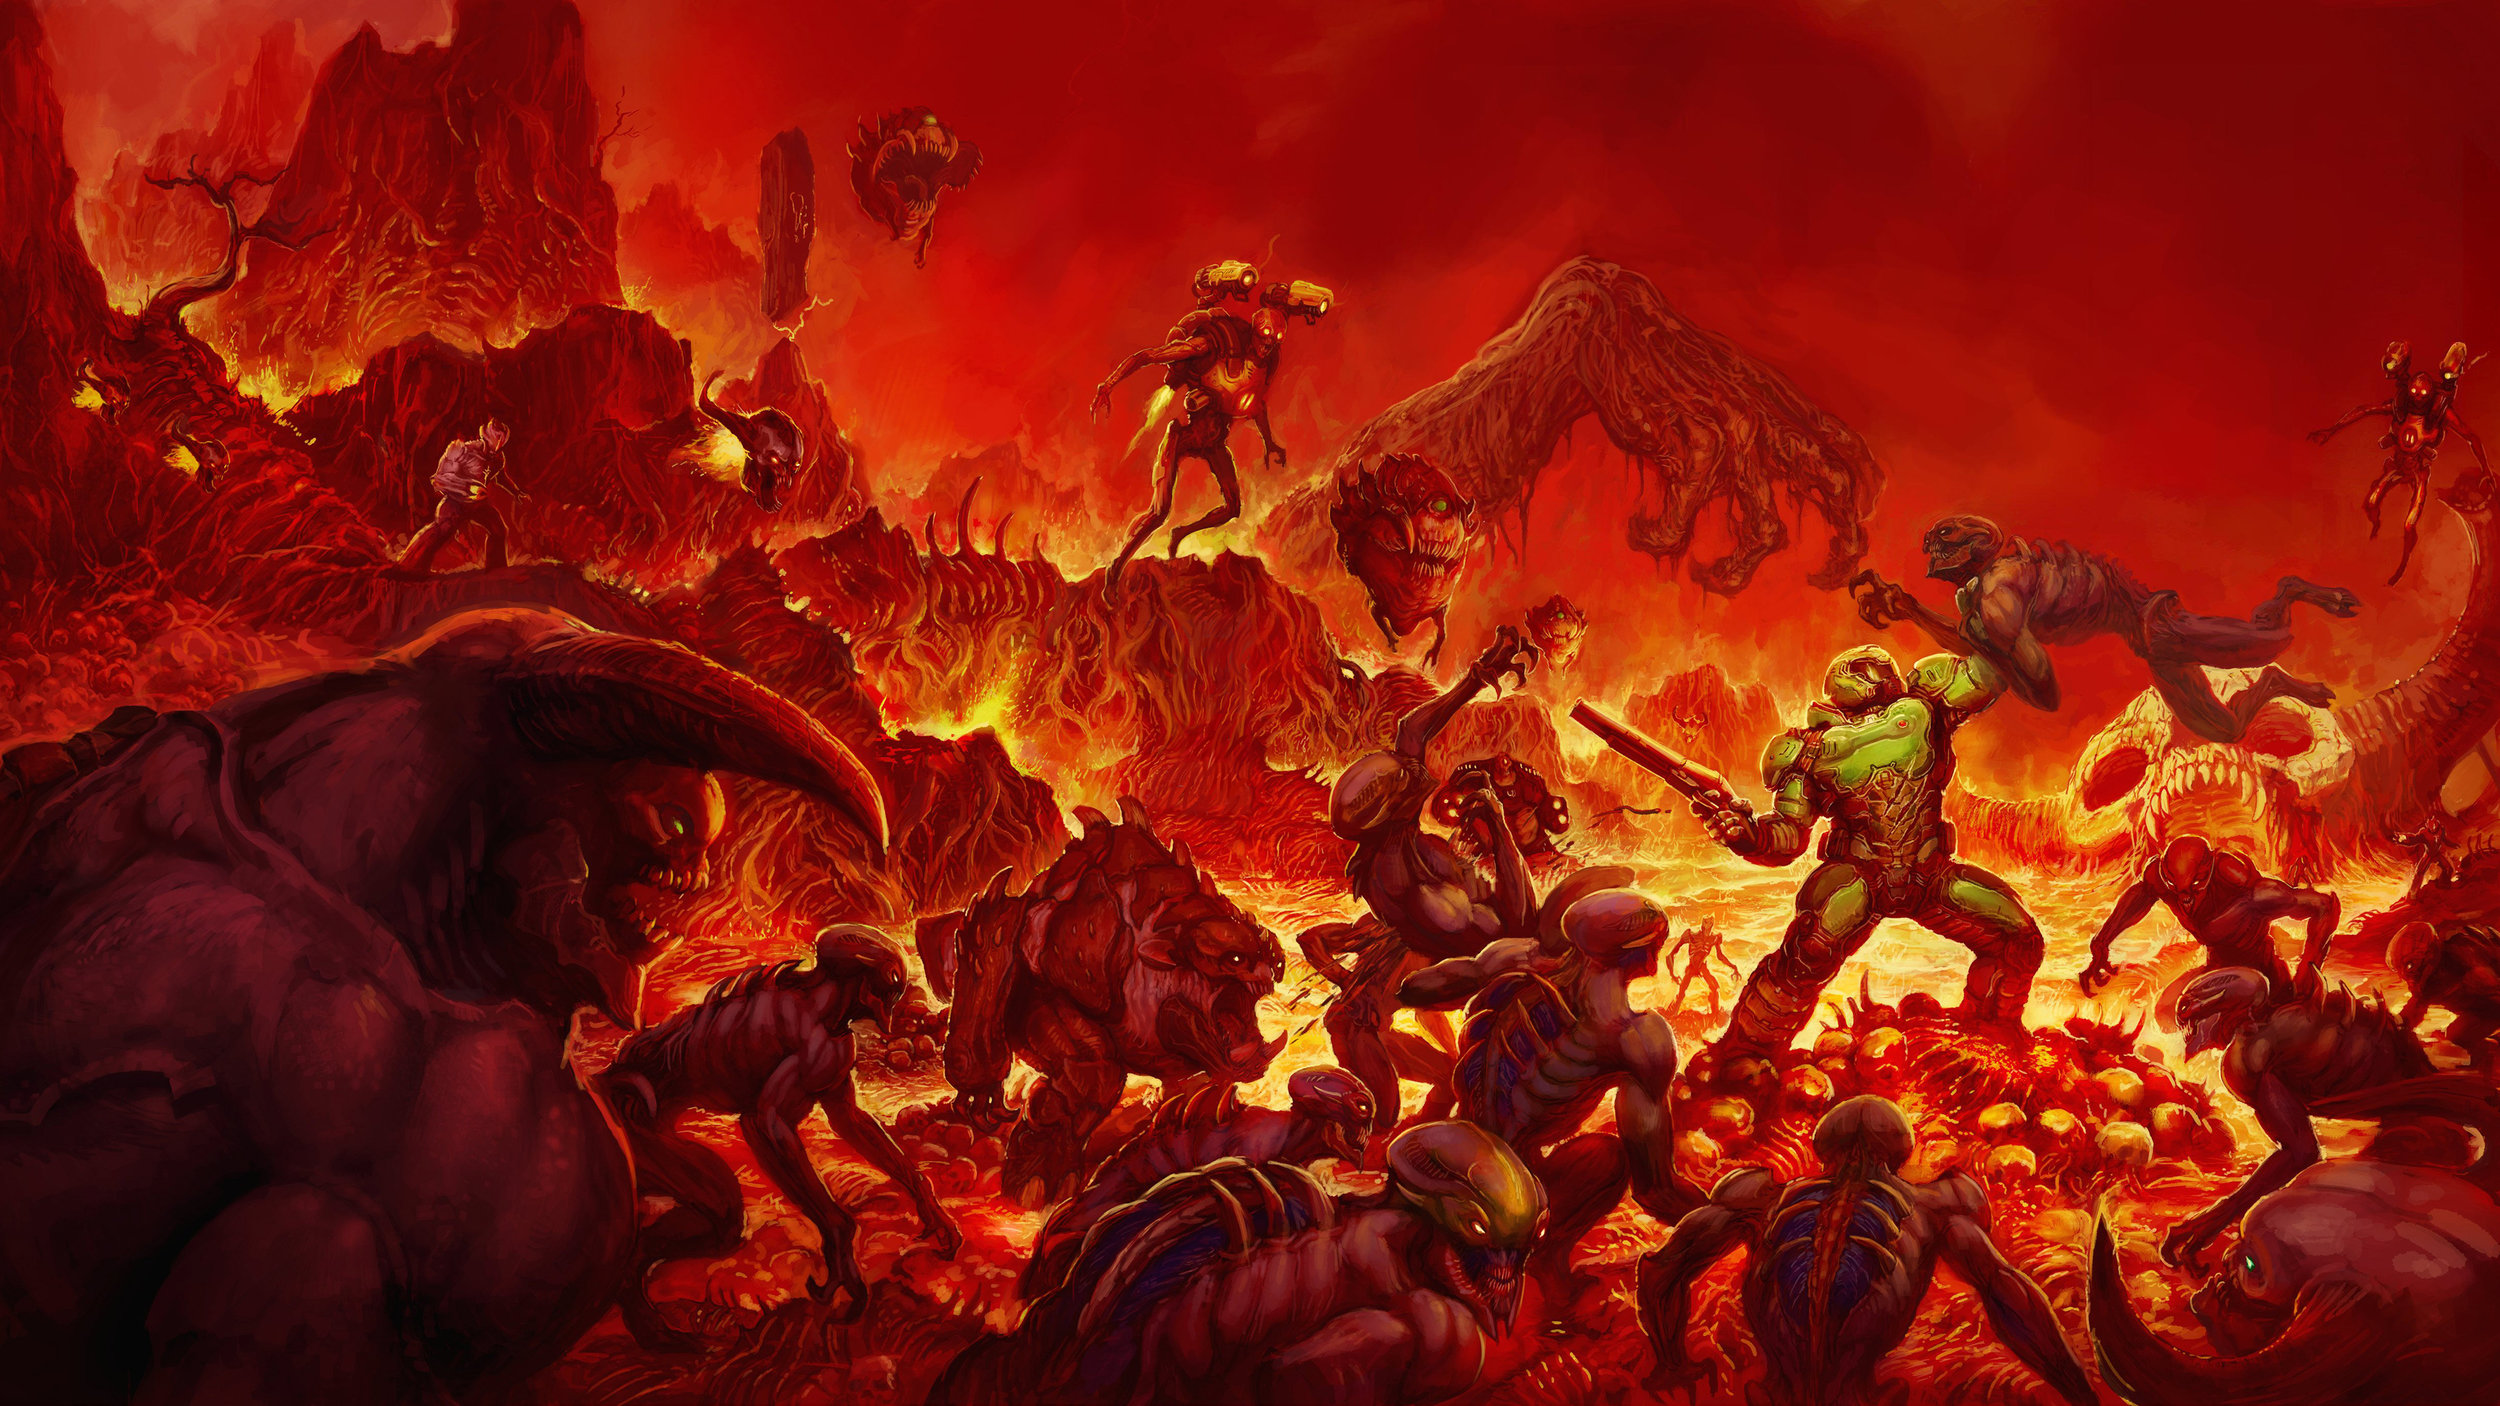 DOOM (2016) - The finest shooter to date.